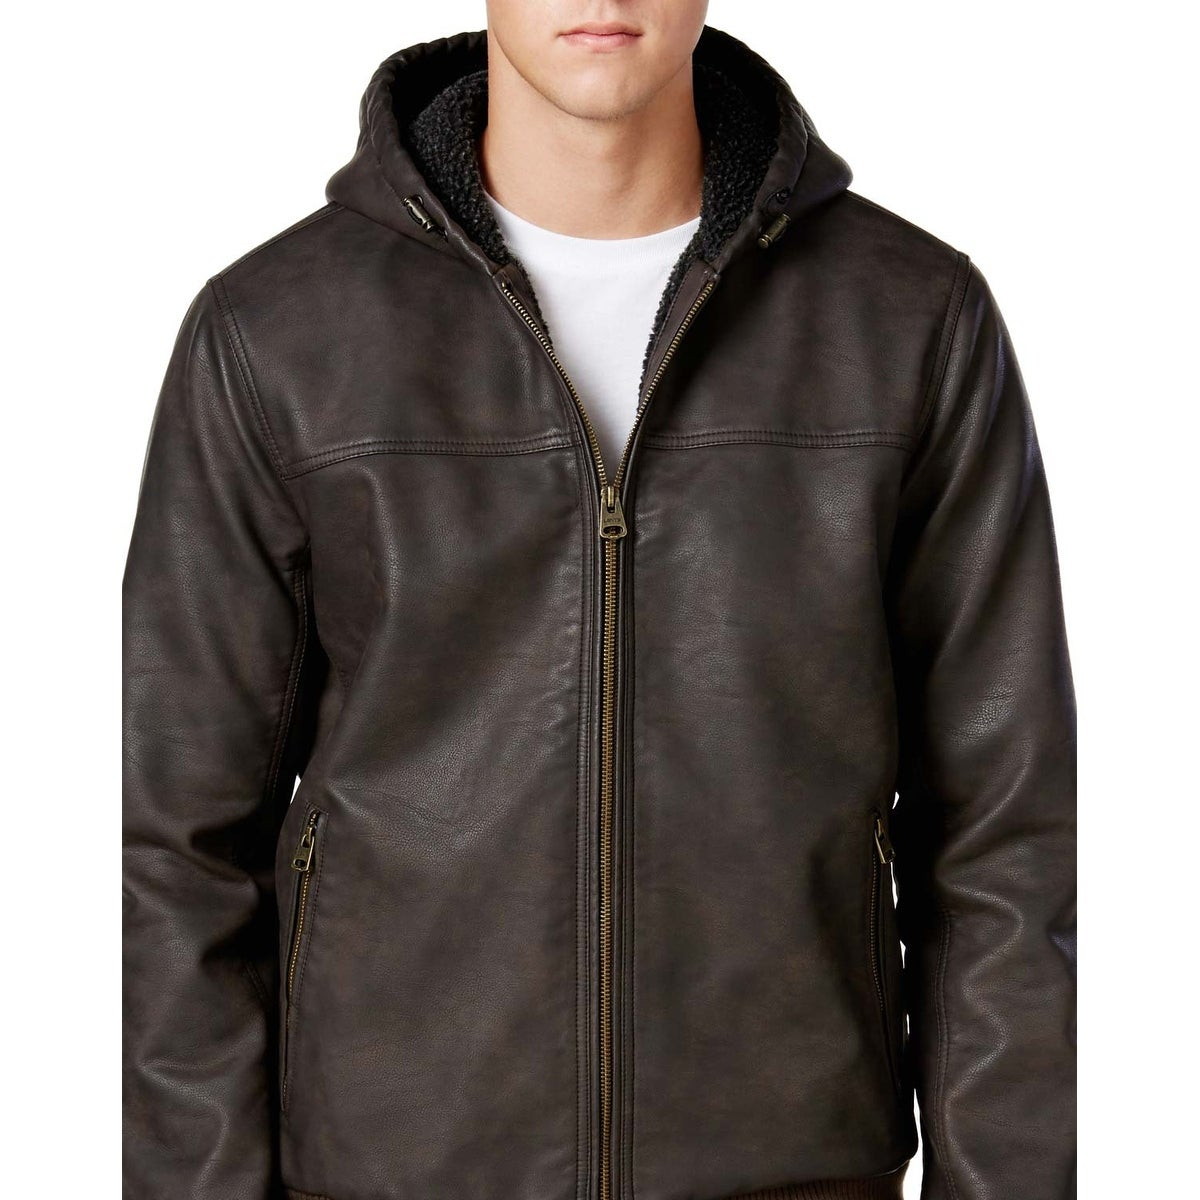 Levi's Dark Brown Faux Leather Hooded Sherpa Lining Bomber Jacket Medium M